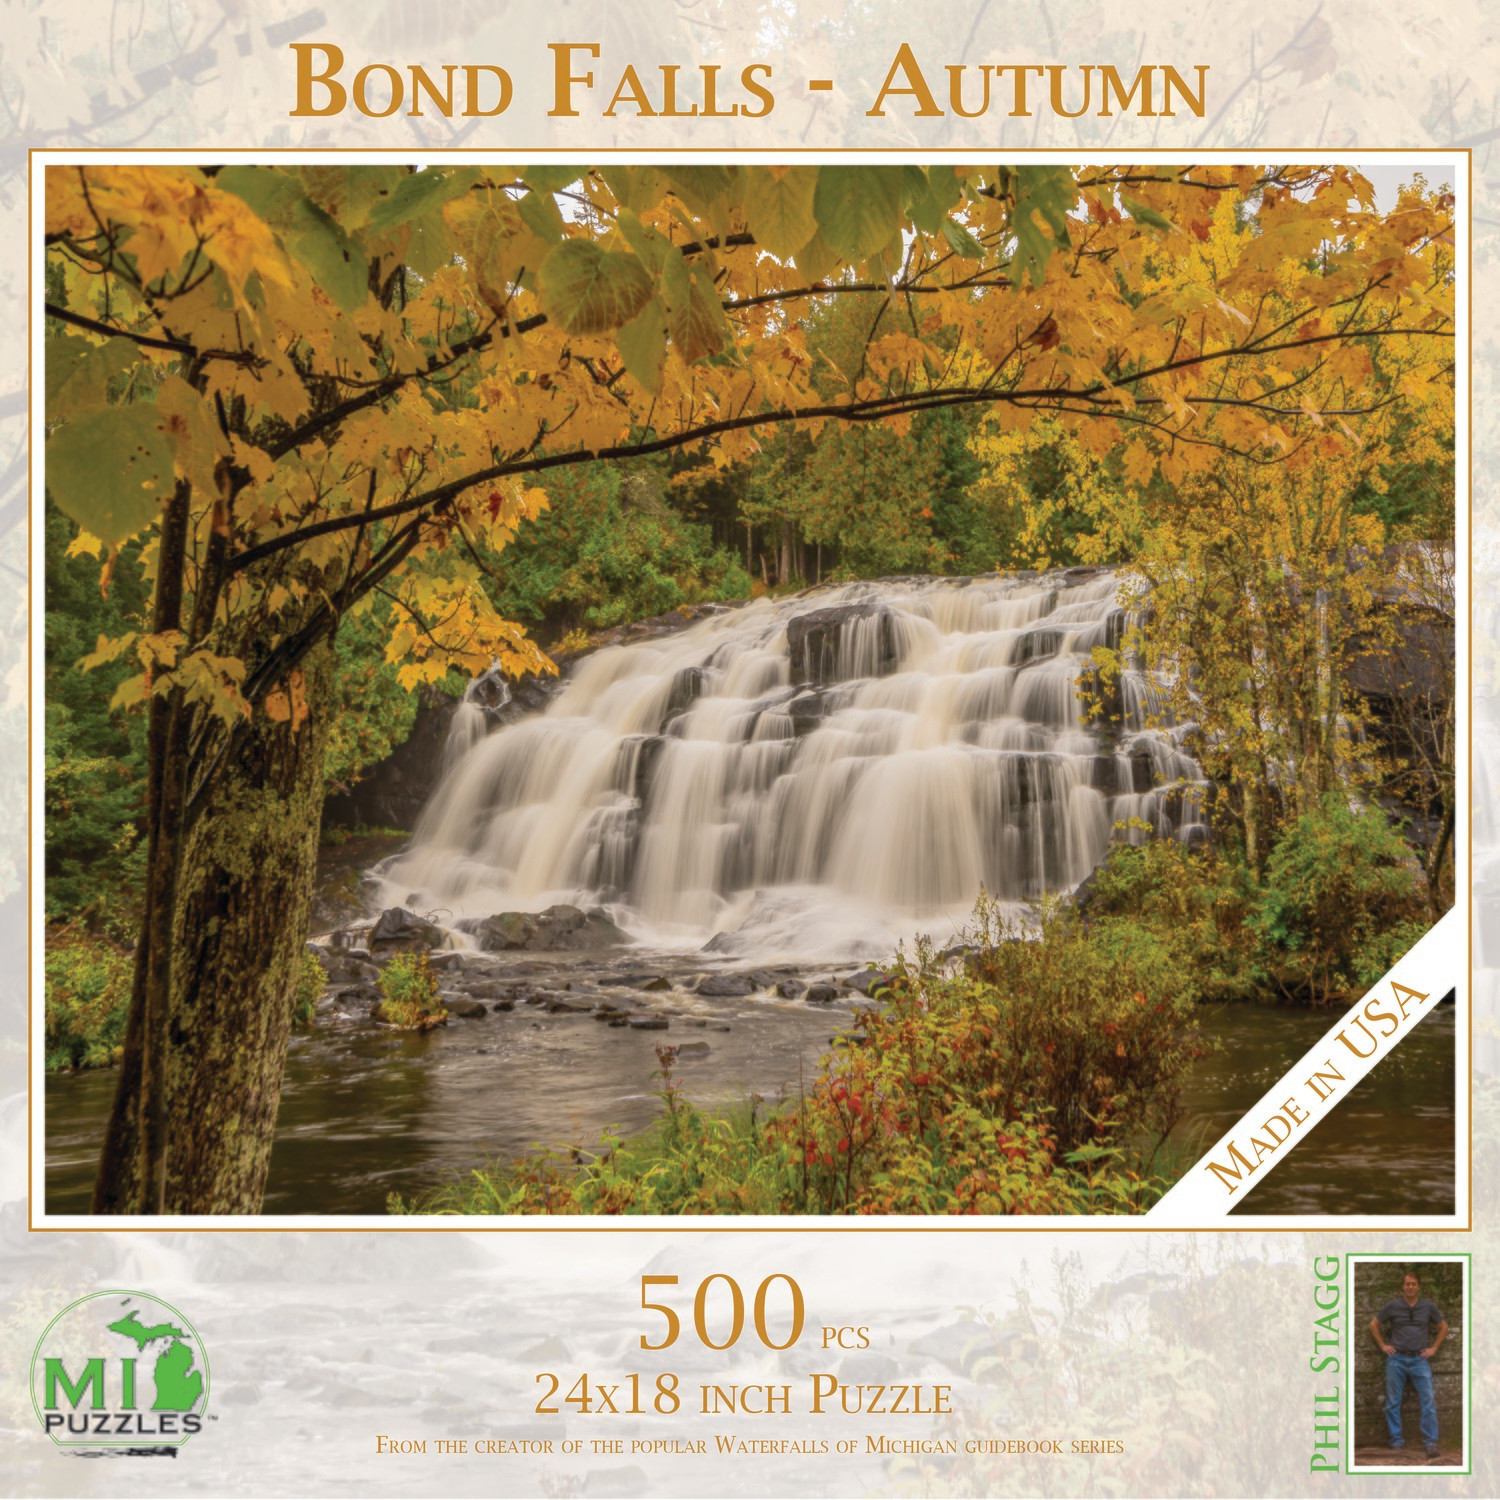 Bond Falls - Autumn